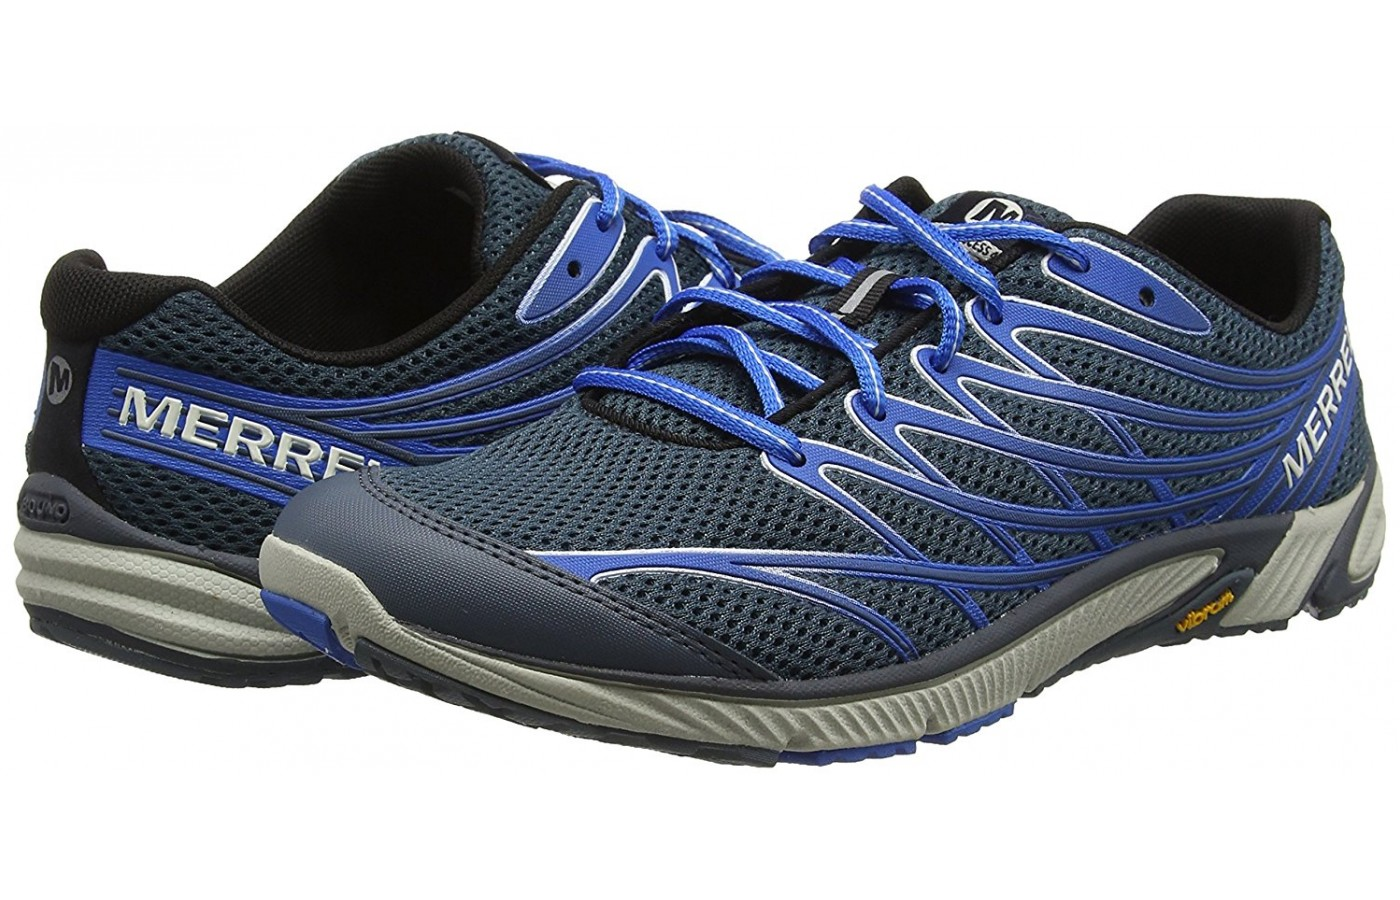 Merrell Bare Access 4 pair